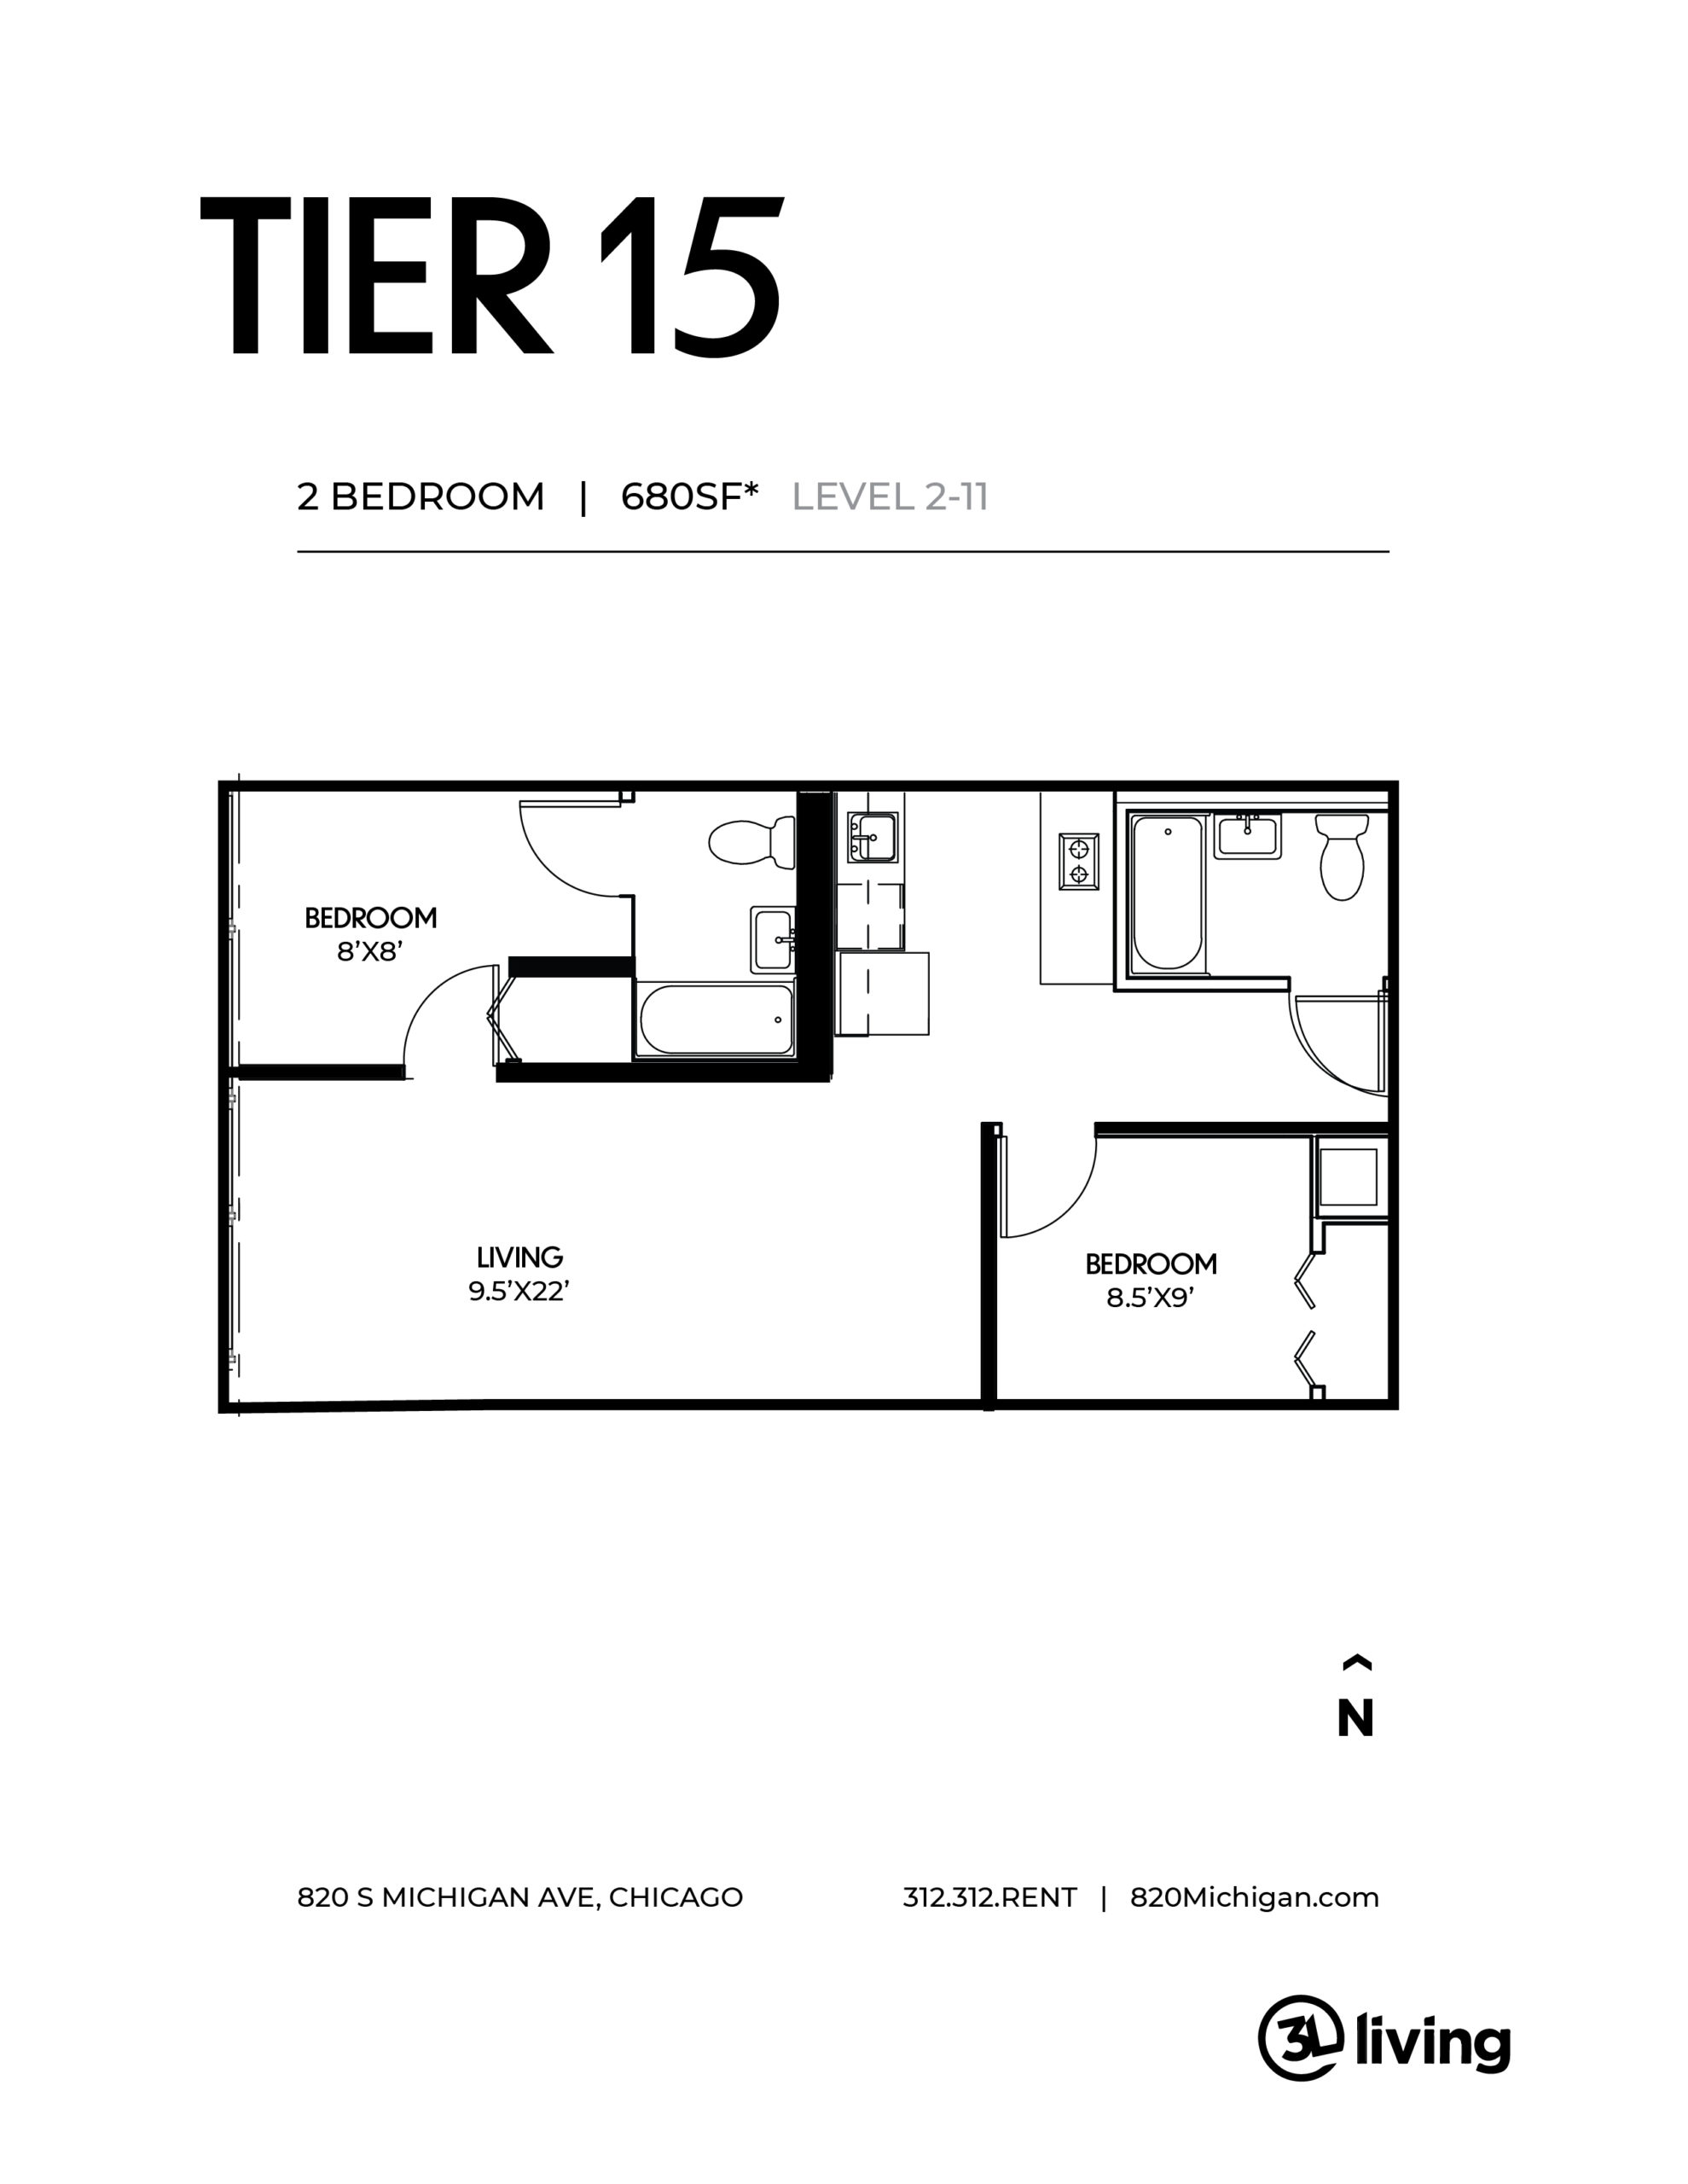 820SM-Floorplans-Measurements-R3-15